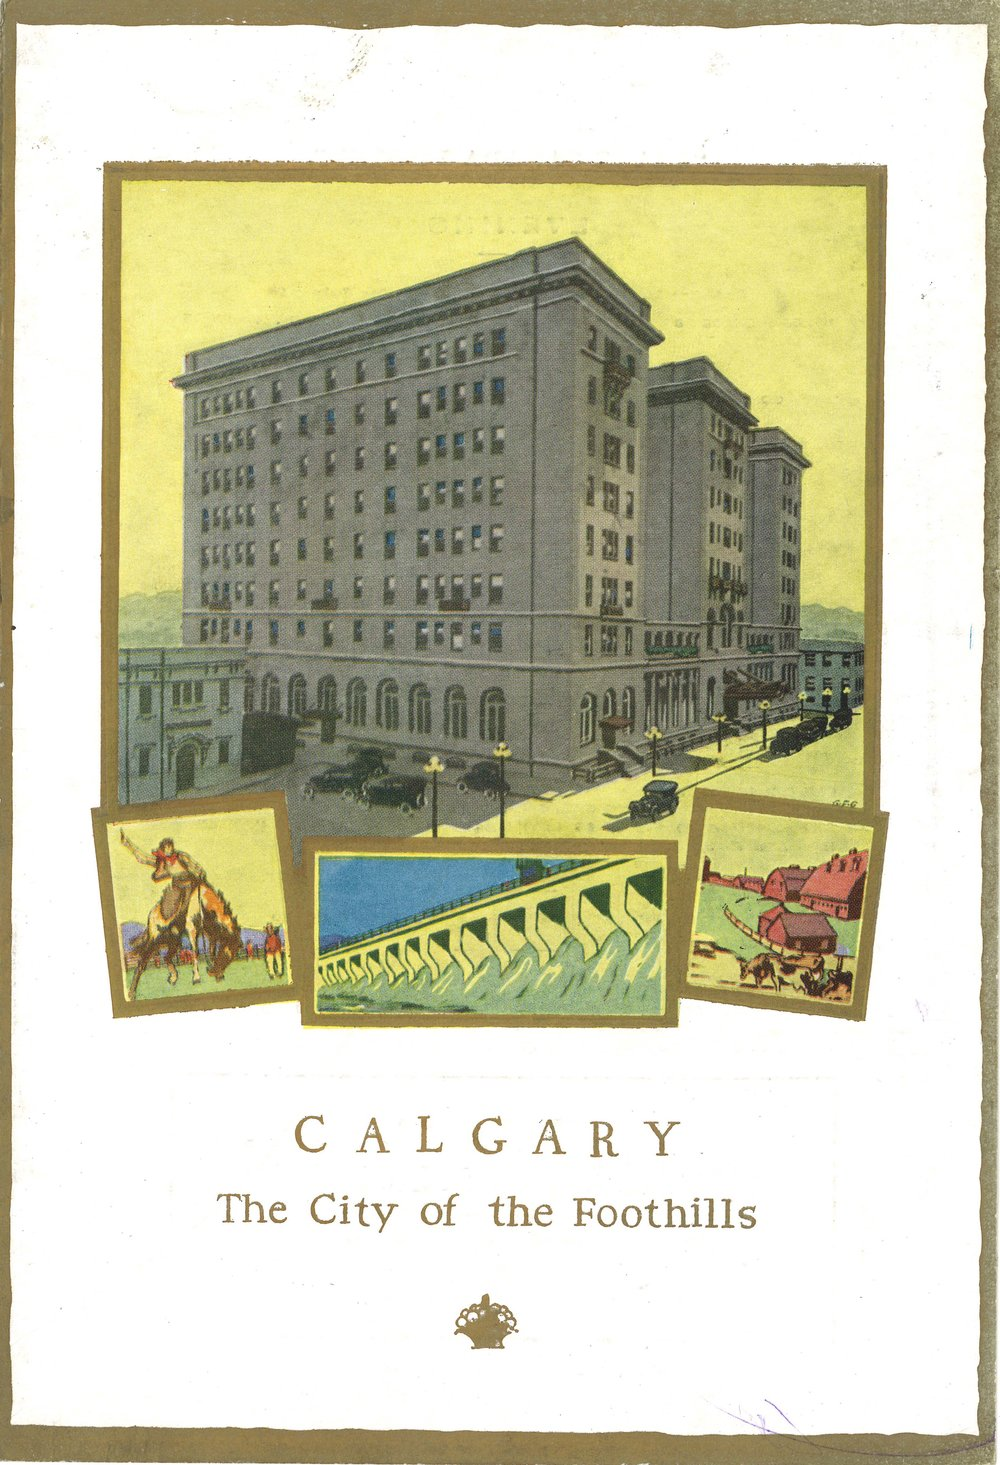 Canadian Pacific Calgary City of the Foothills Menu _sm1a.jpg